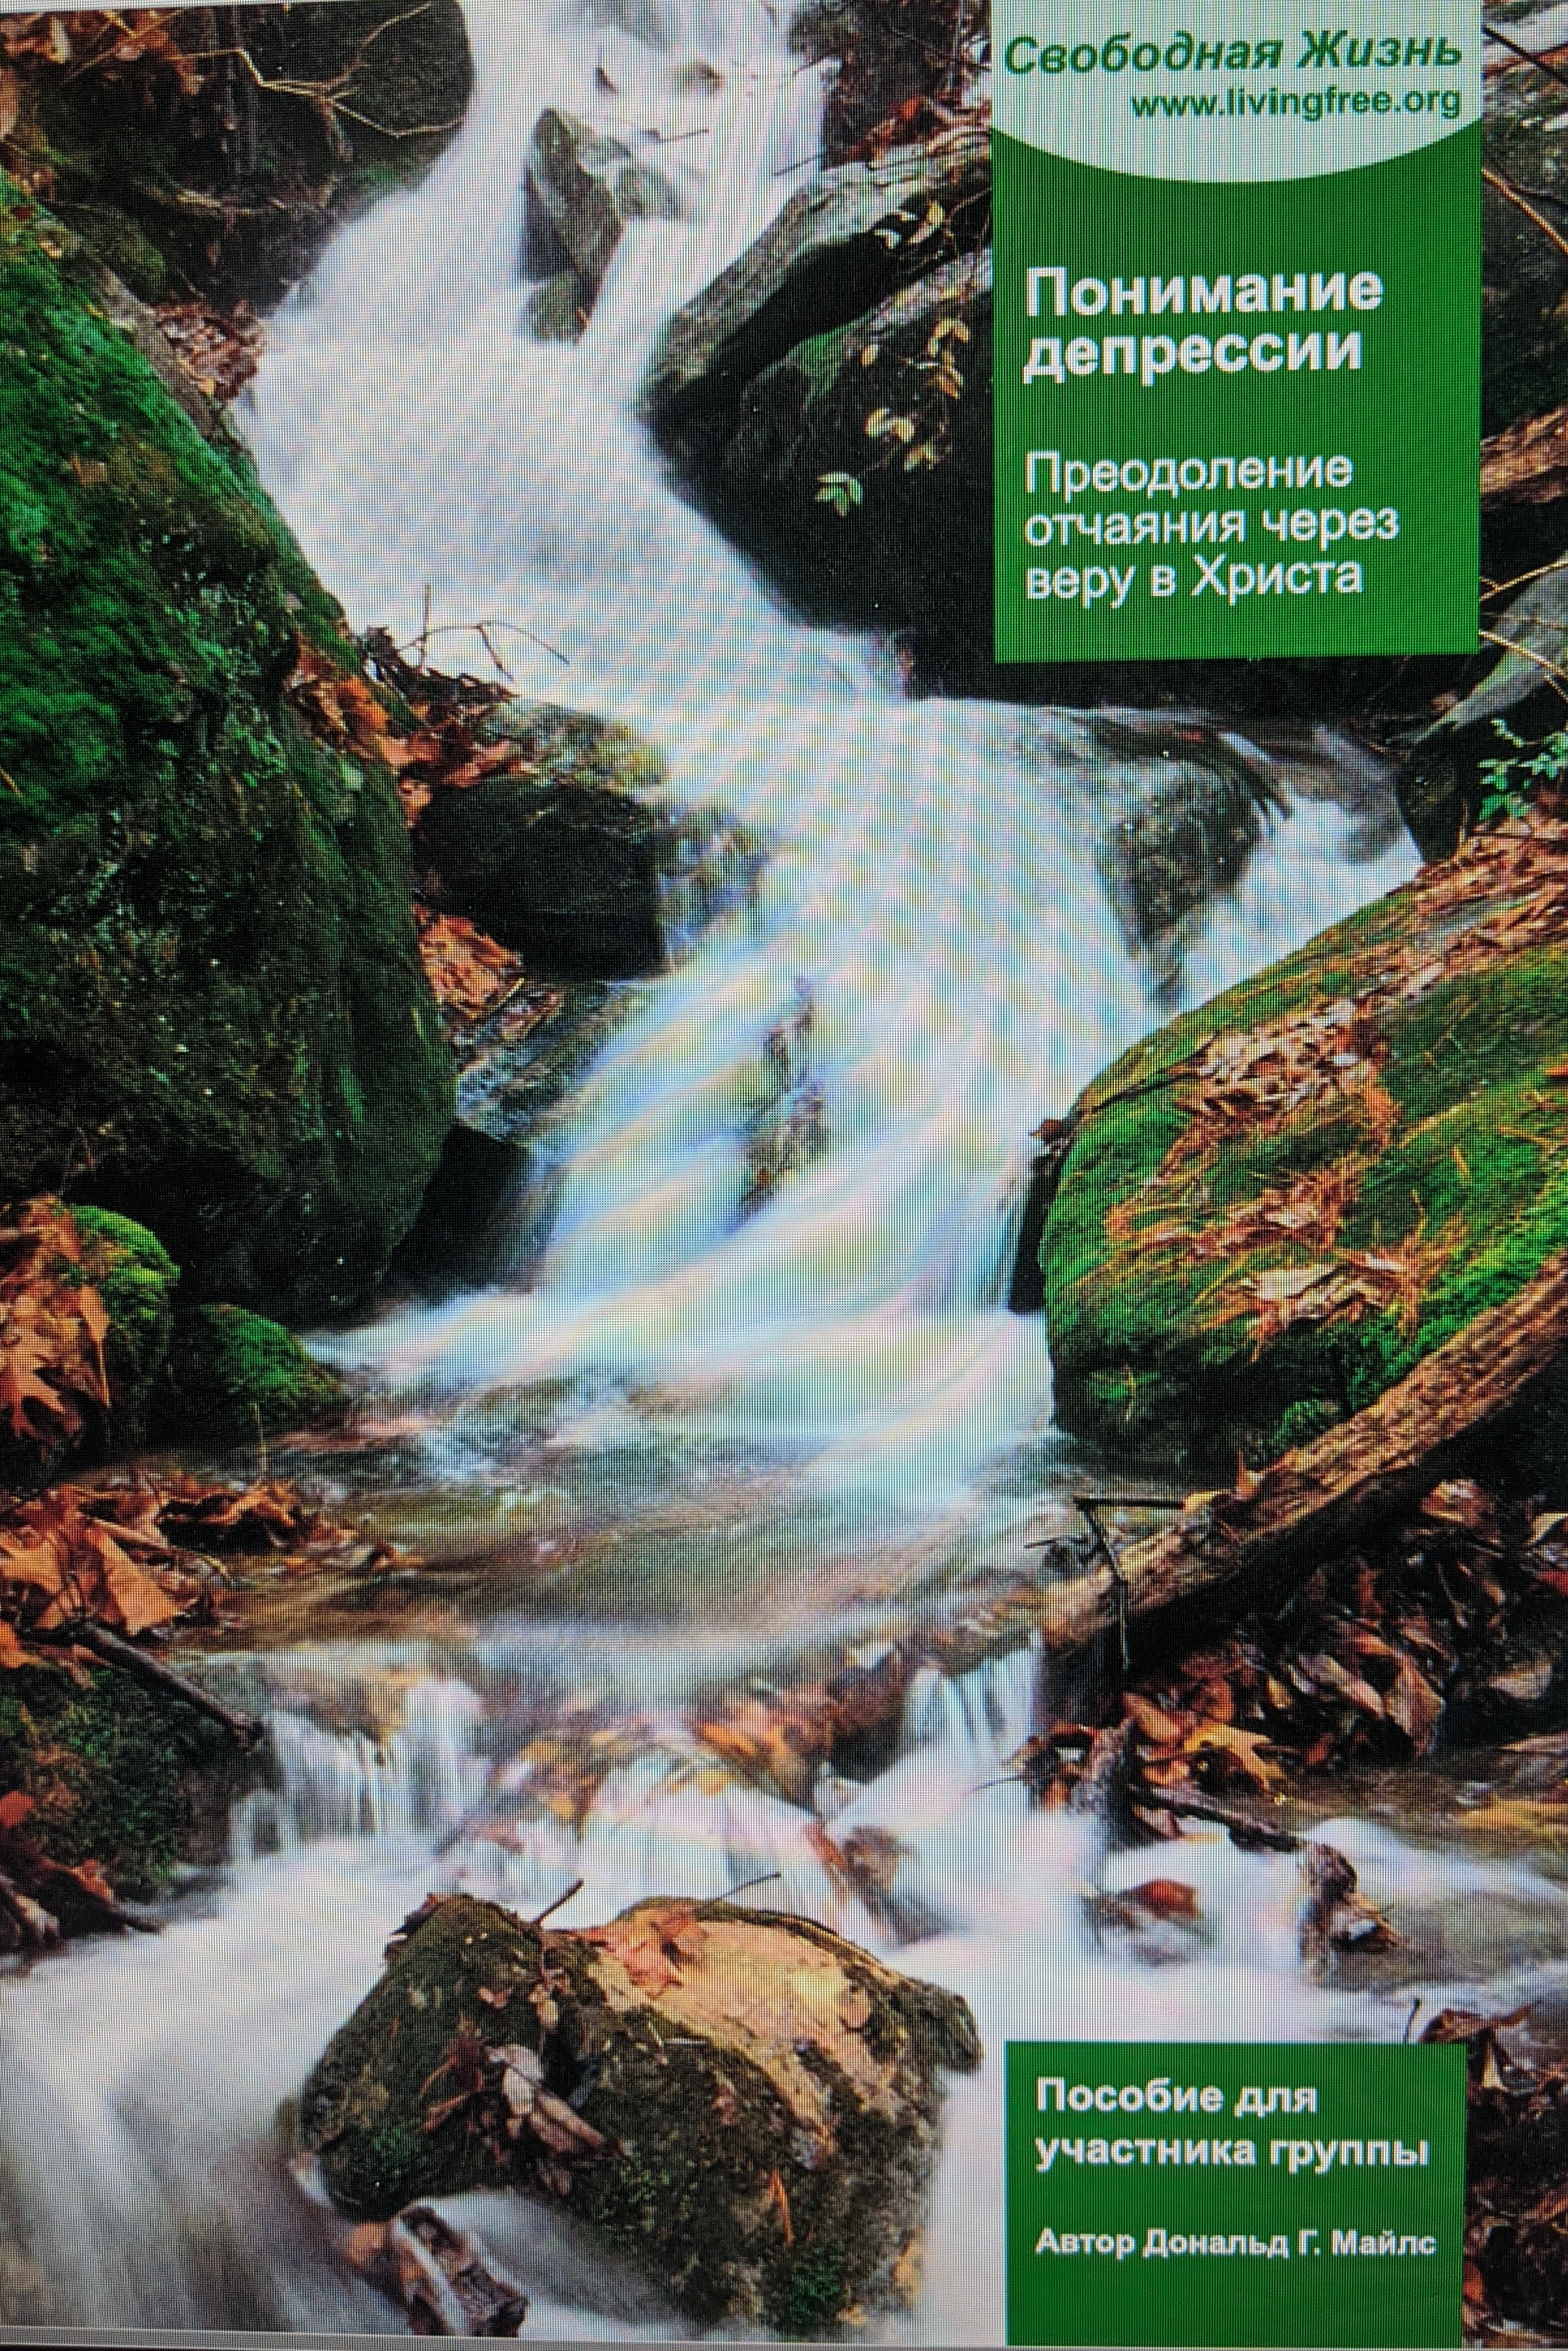 Russian Understanding Depression Group Member's Guide Download